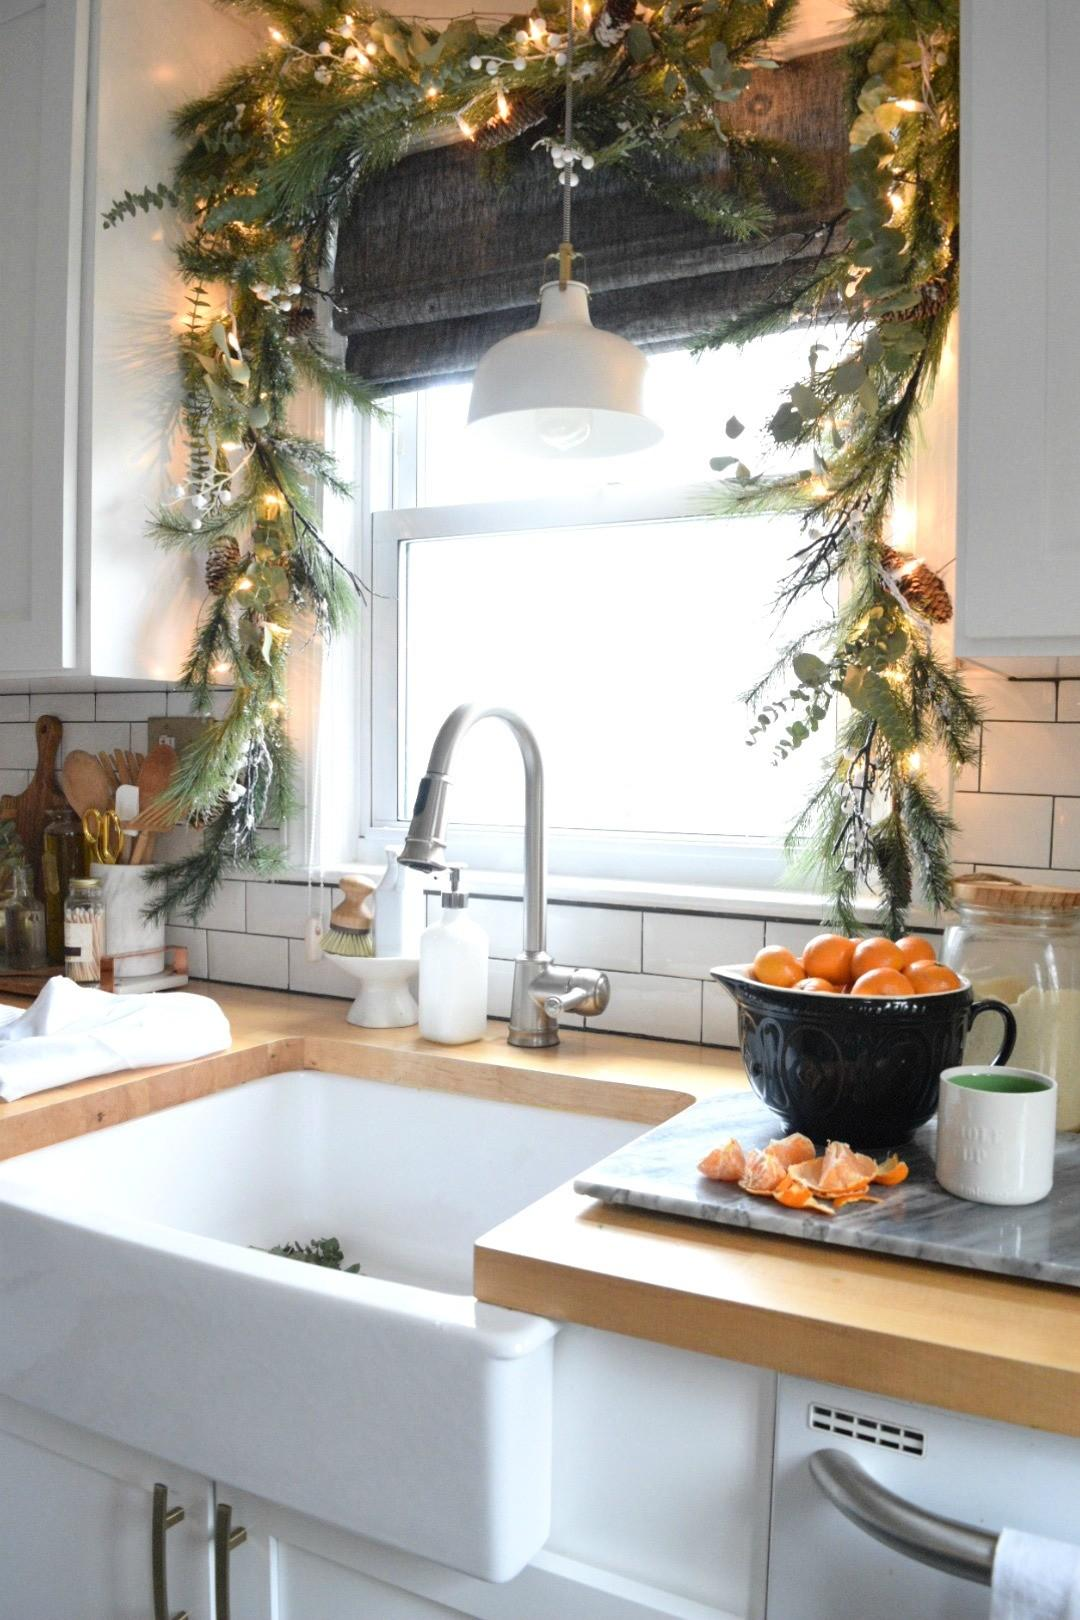 Christmas Our Small Kitchen Started